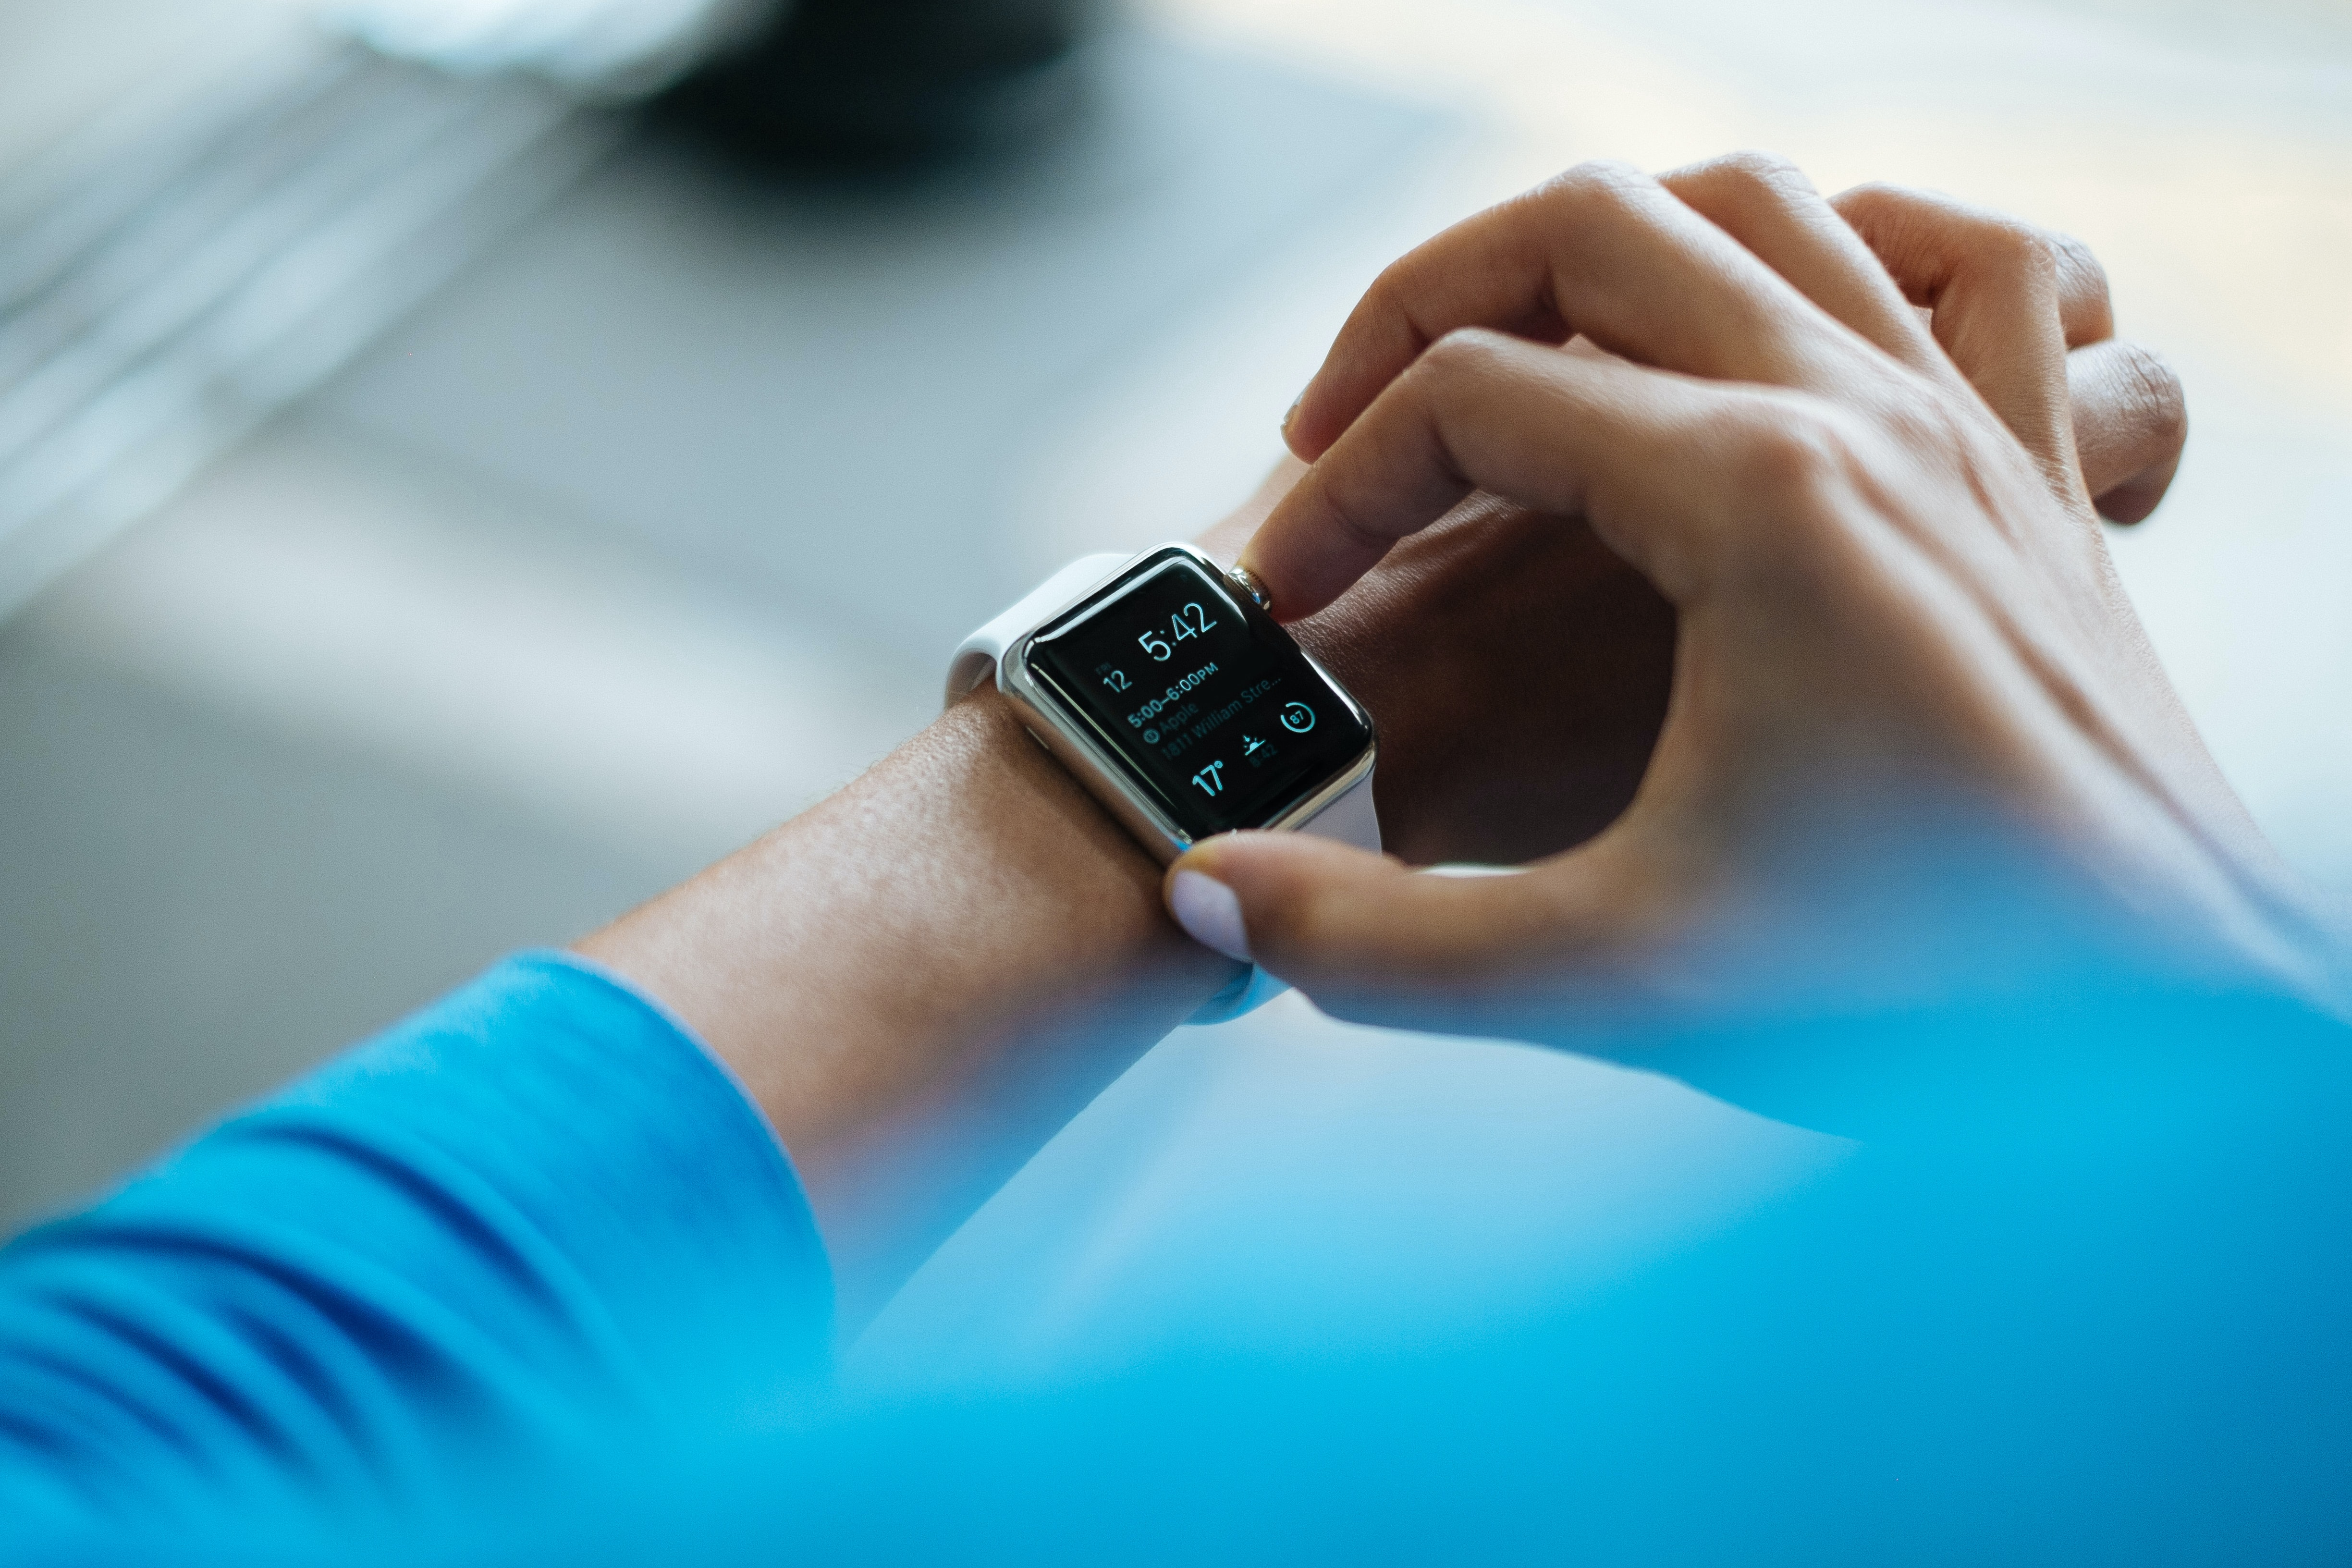 Wearable blood pressure monitoring devices to improve blood pressure control